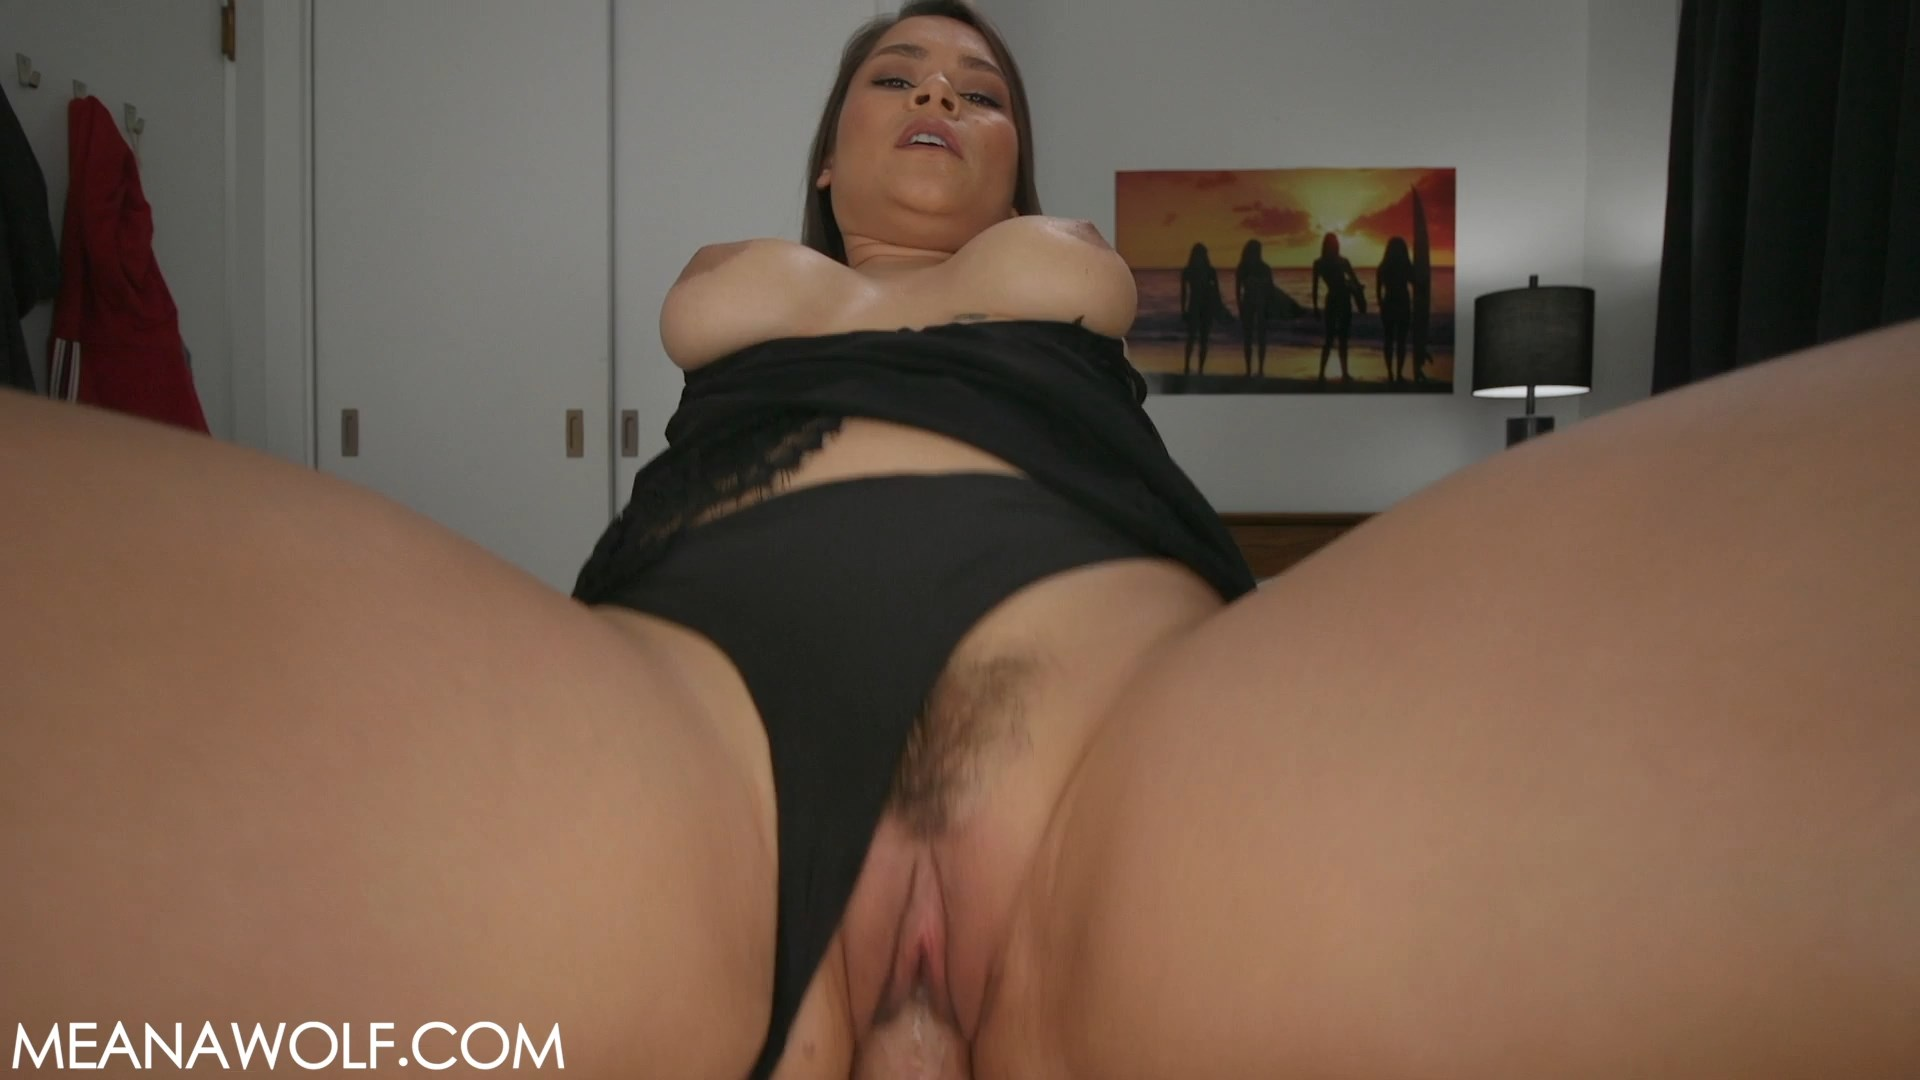 Meana Wolf - Mommy Sex Ed pt2 - 1080pHD